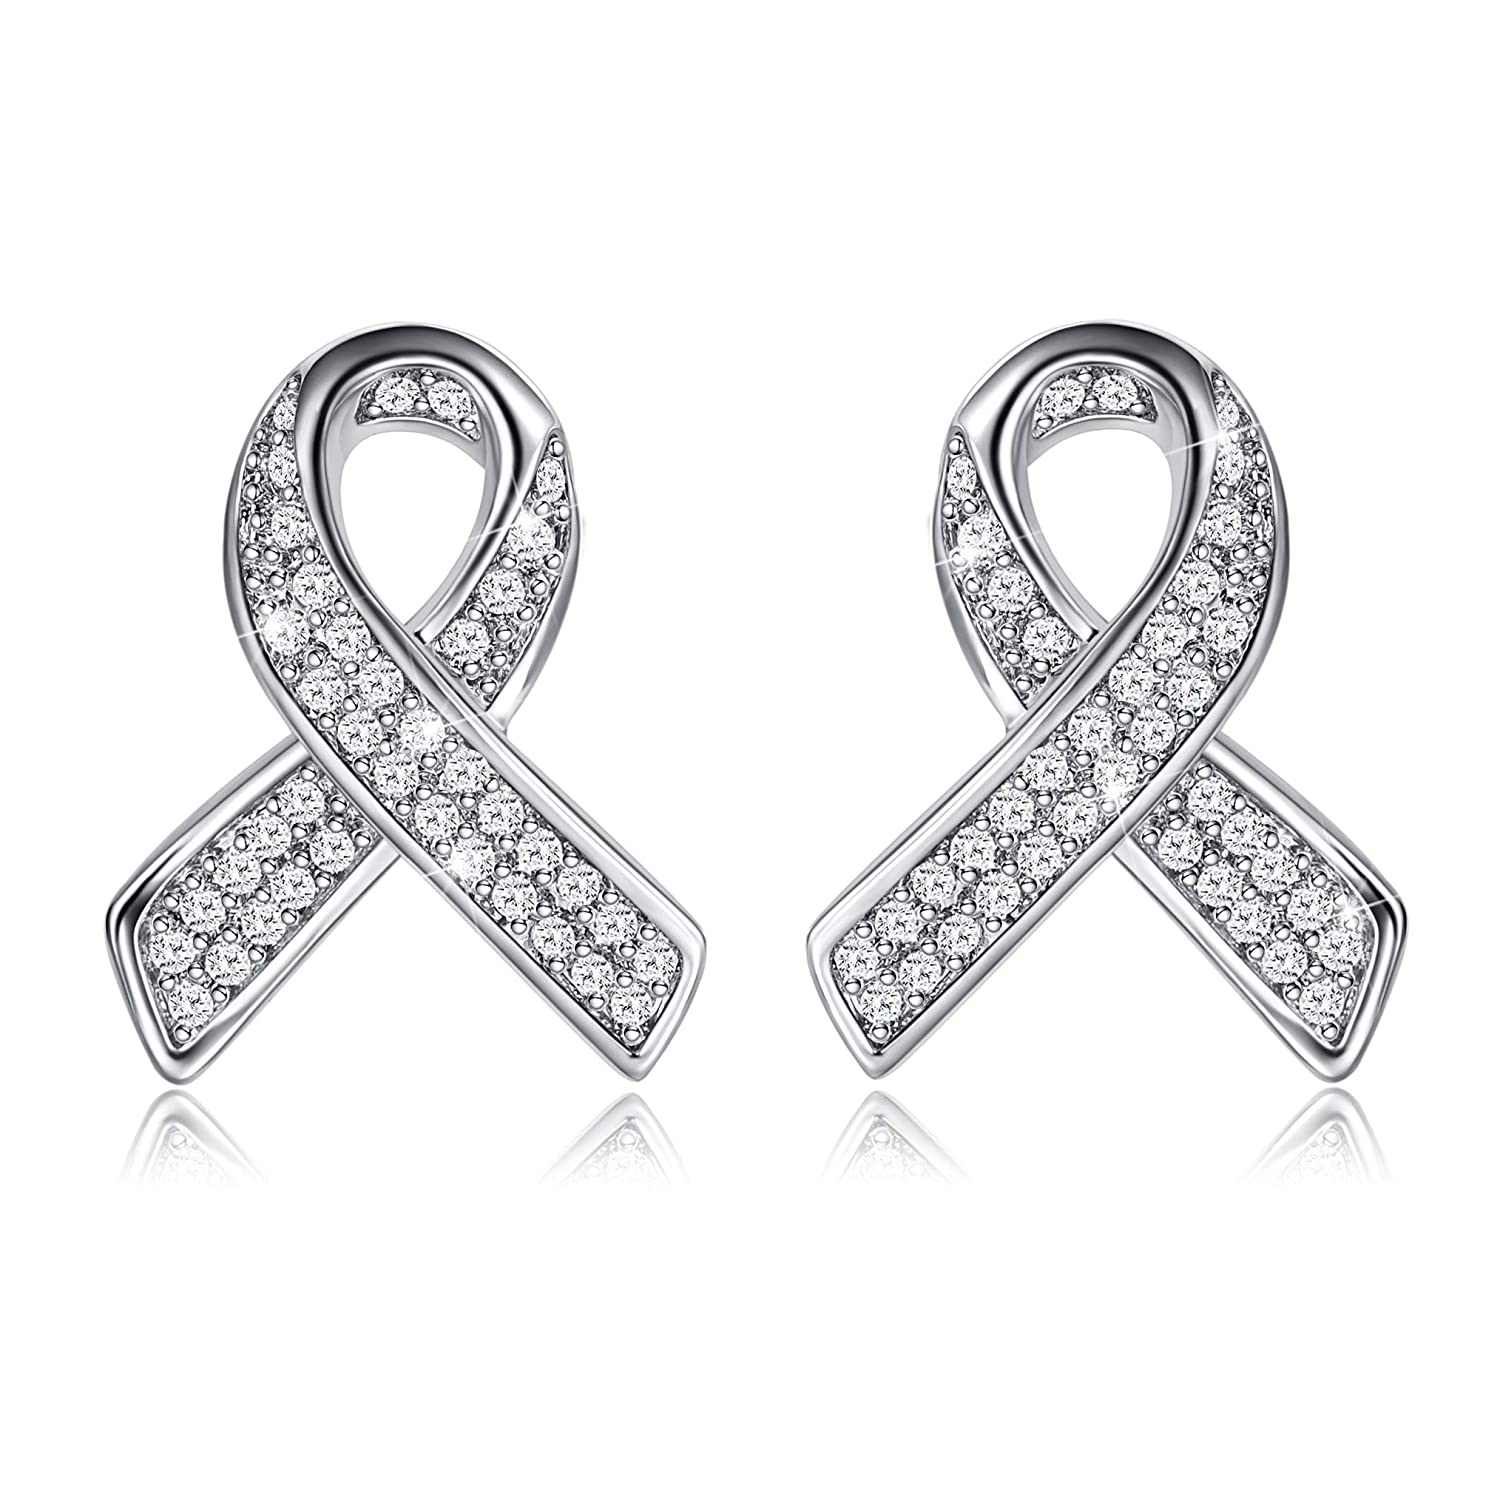 Long Way Silver Plated 5A Cubic Zirconia Cancer Awareness Ribbon Stud Earrings